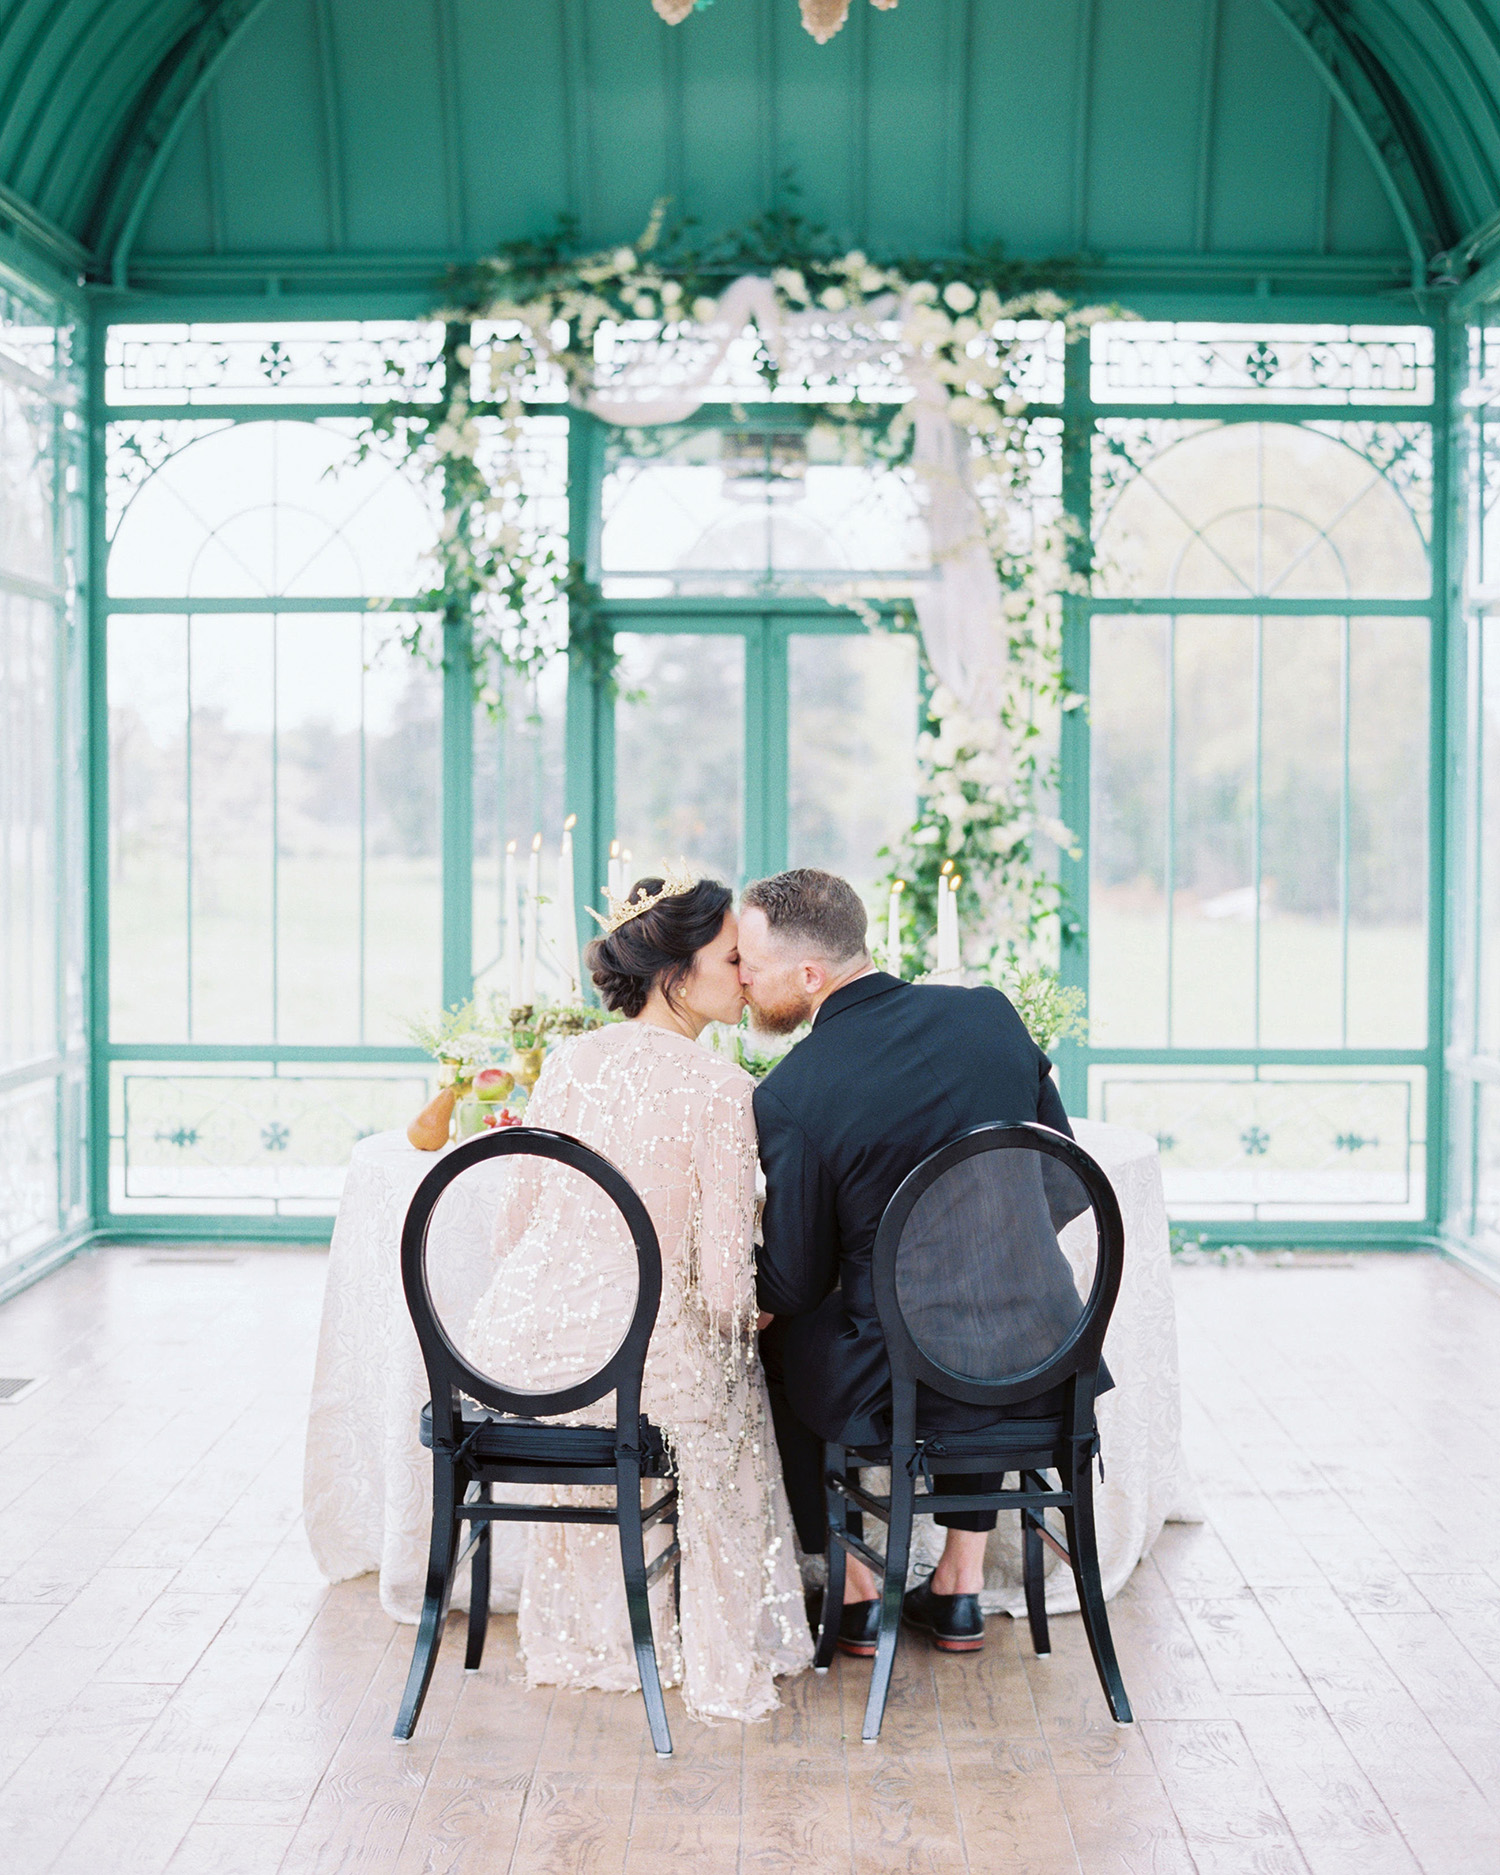 evan dustin vow renewal bride groom couple sweetheart table kiss